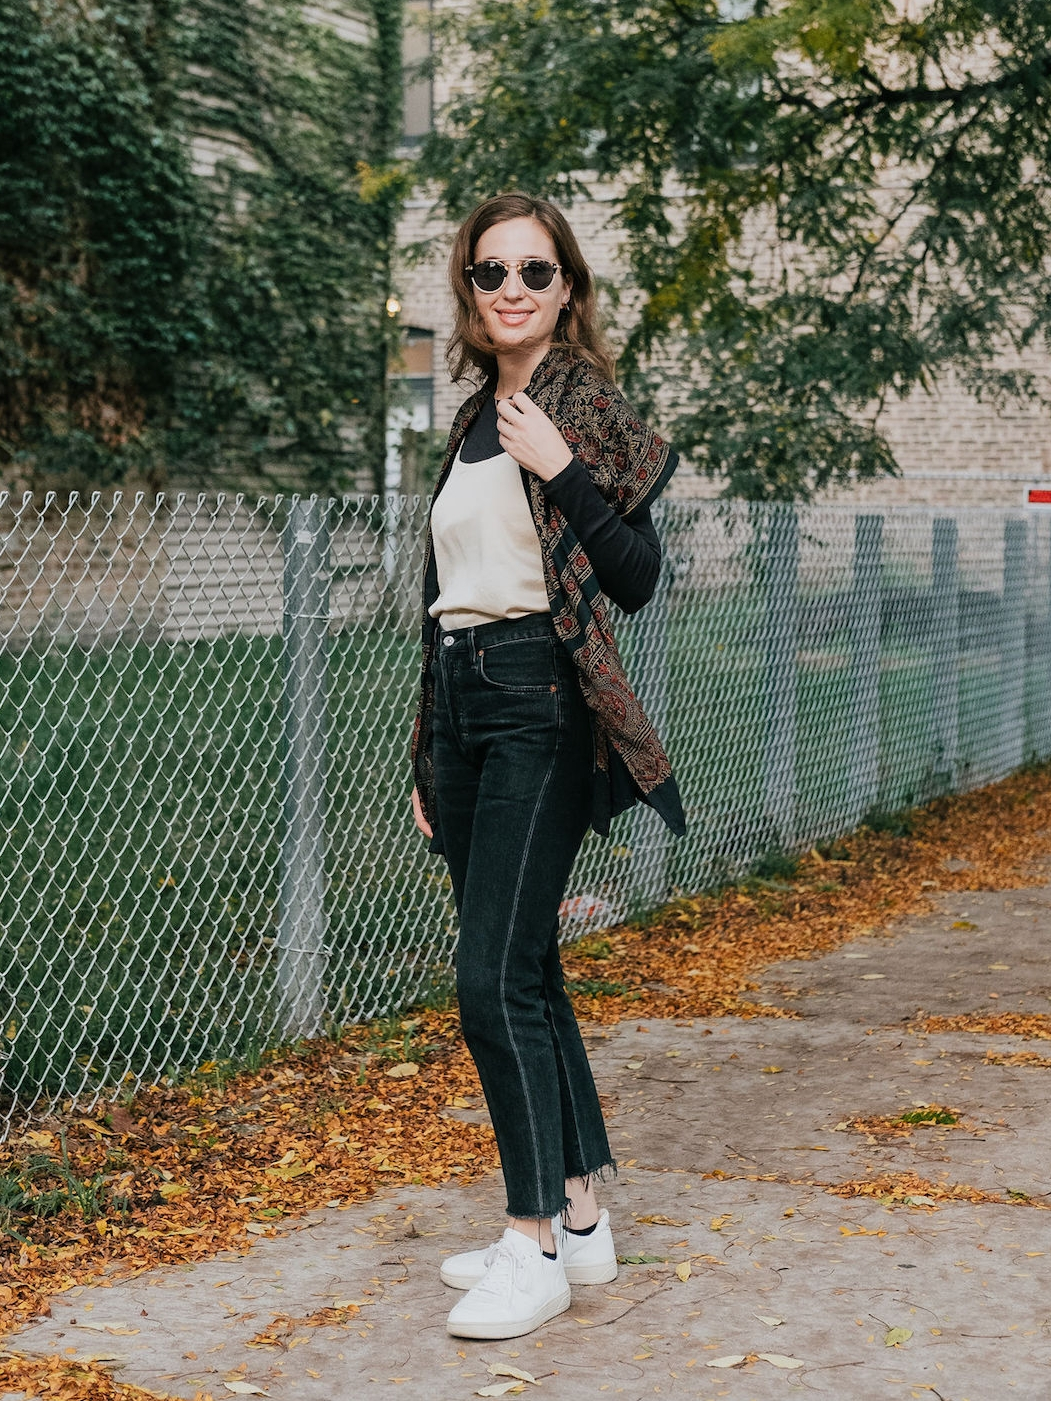 Layered outfit idea - A Week Of Ethical Outfits With Heart With Carly Gerber From Hippie + Heart on The Good Trade